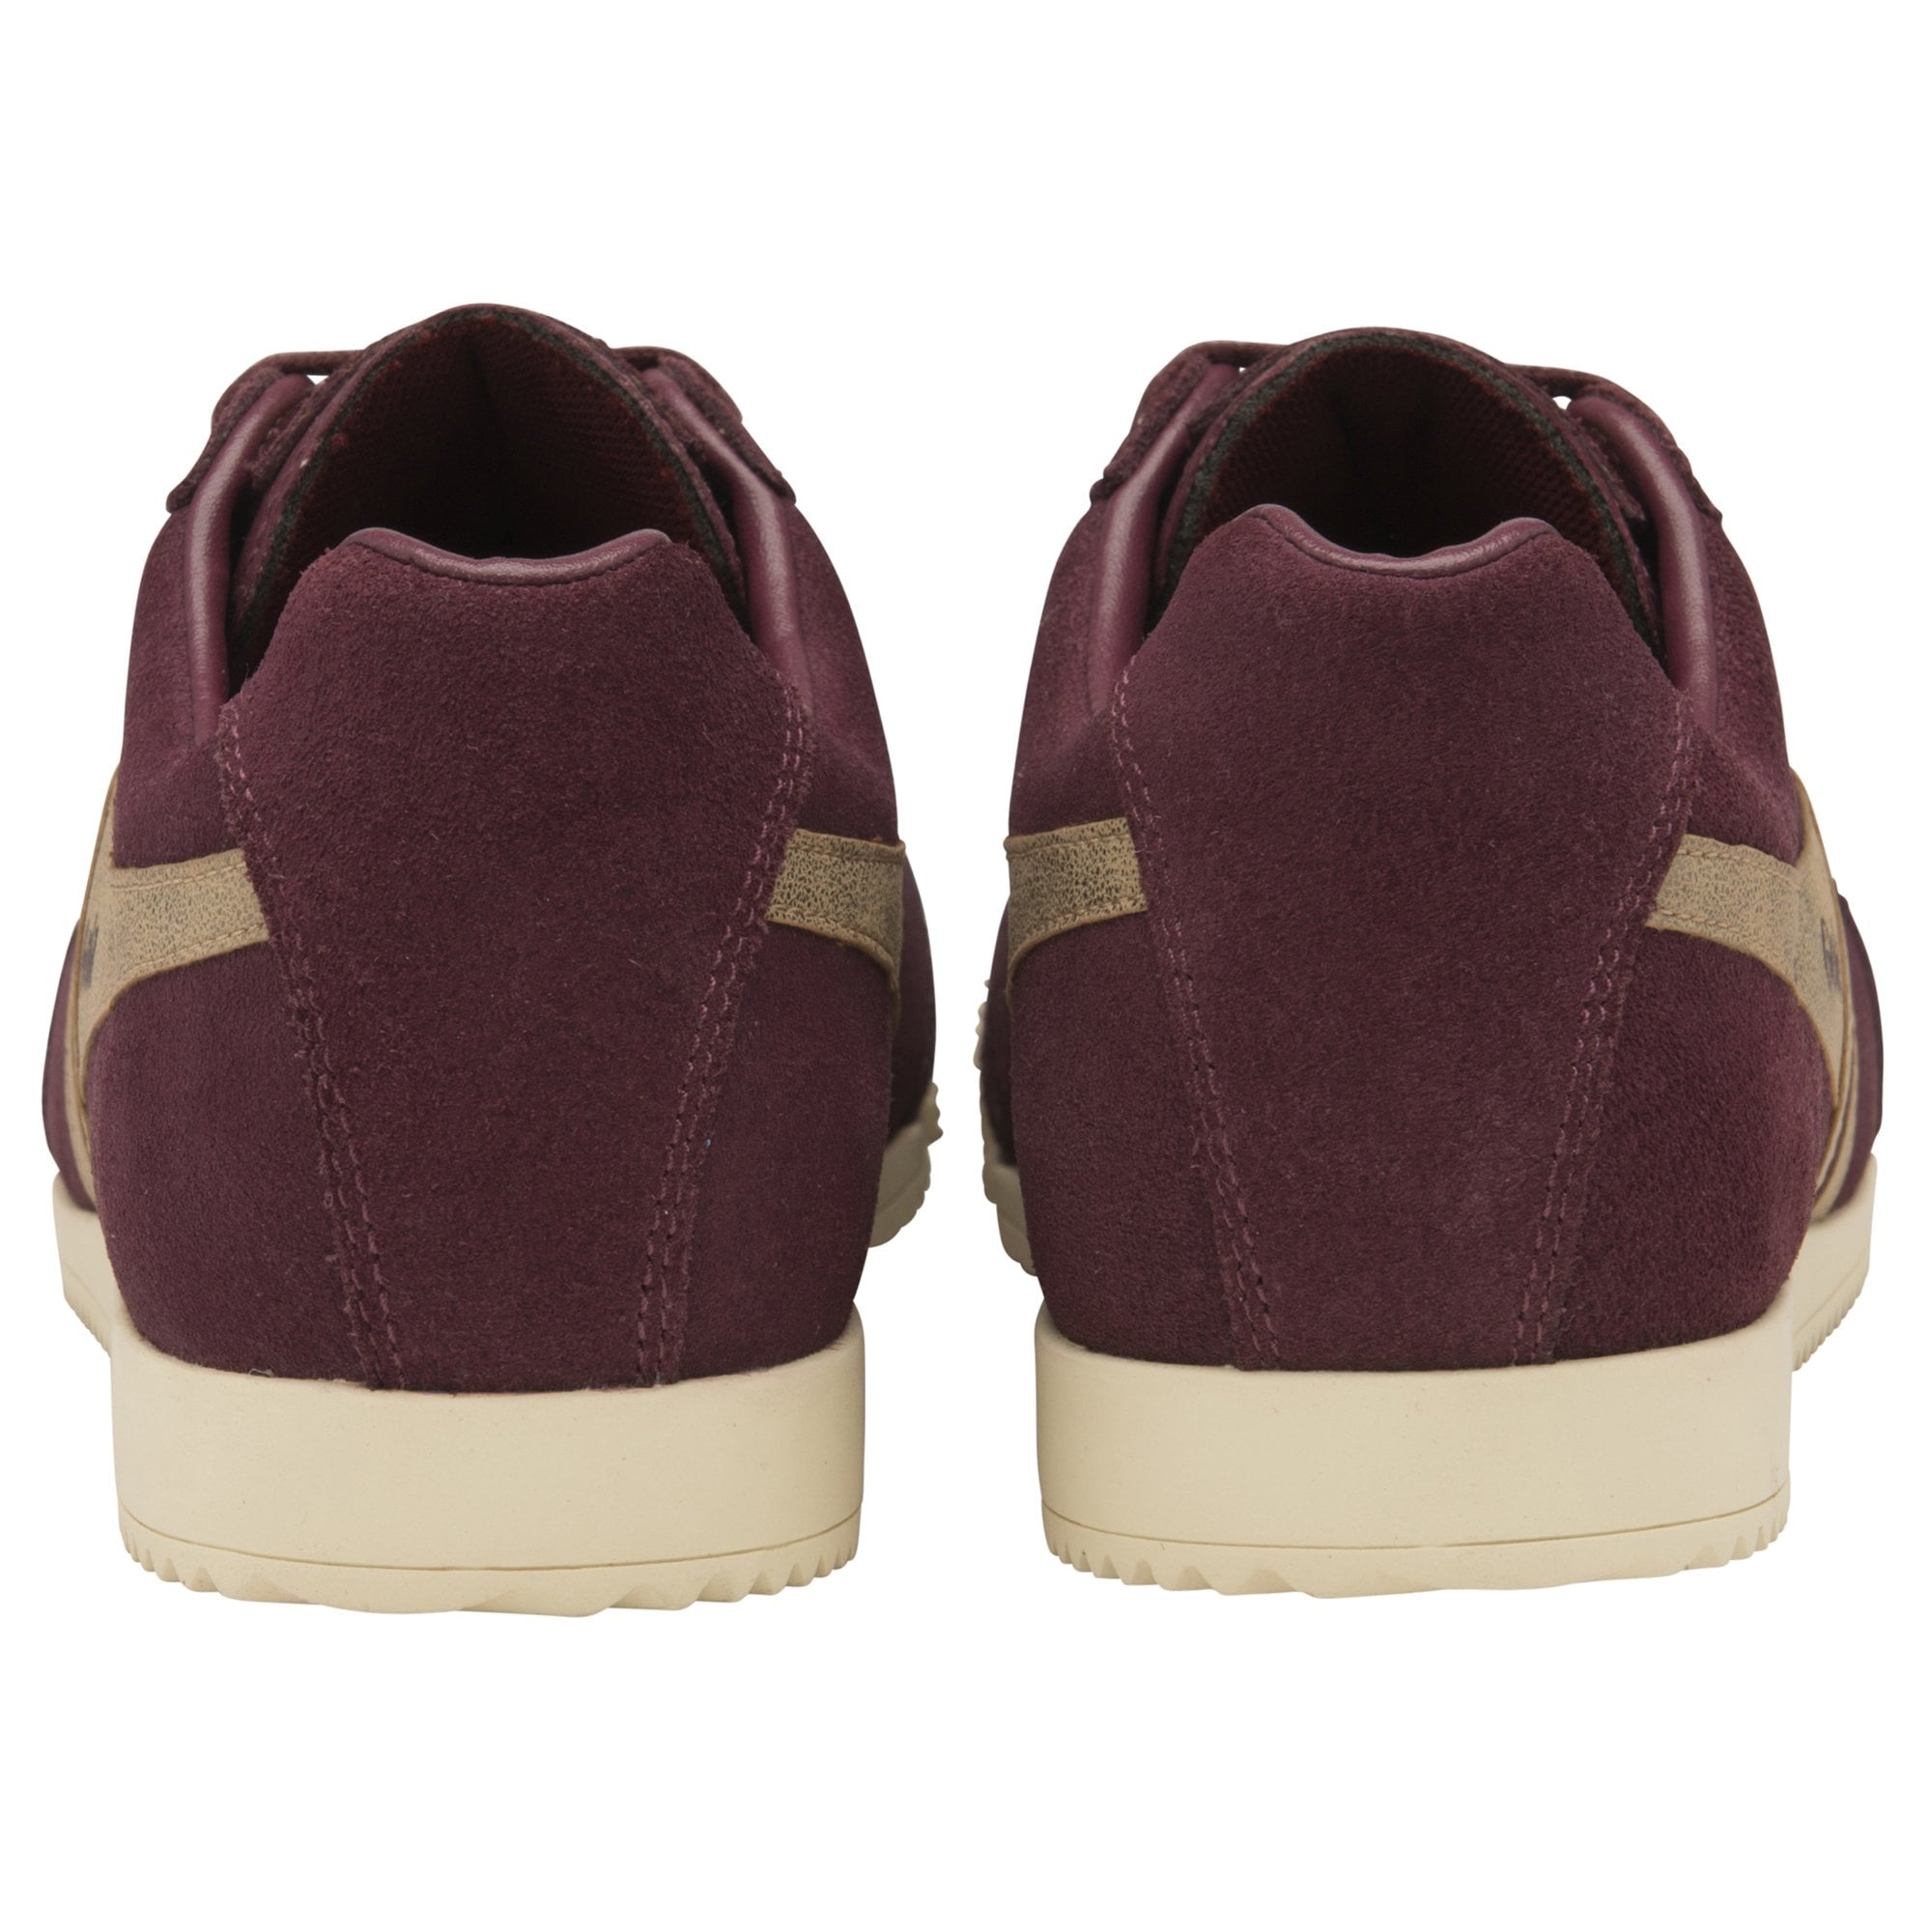 Women's Harrier Mirror Sneakers